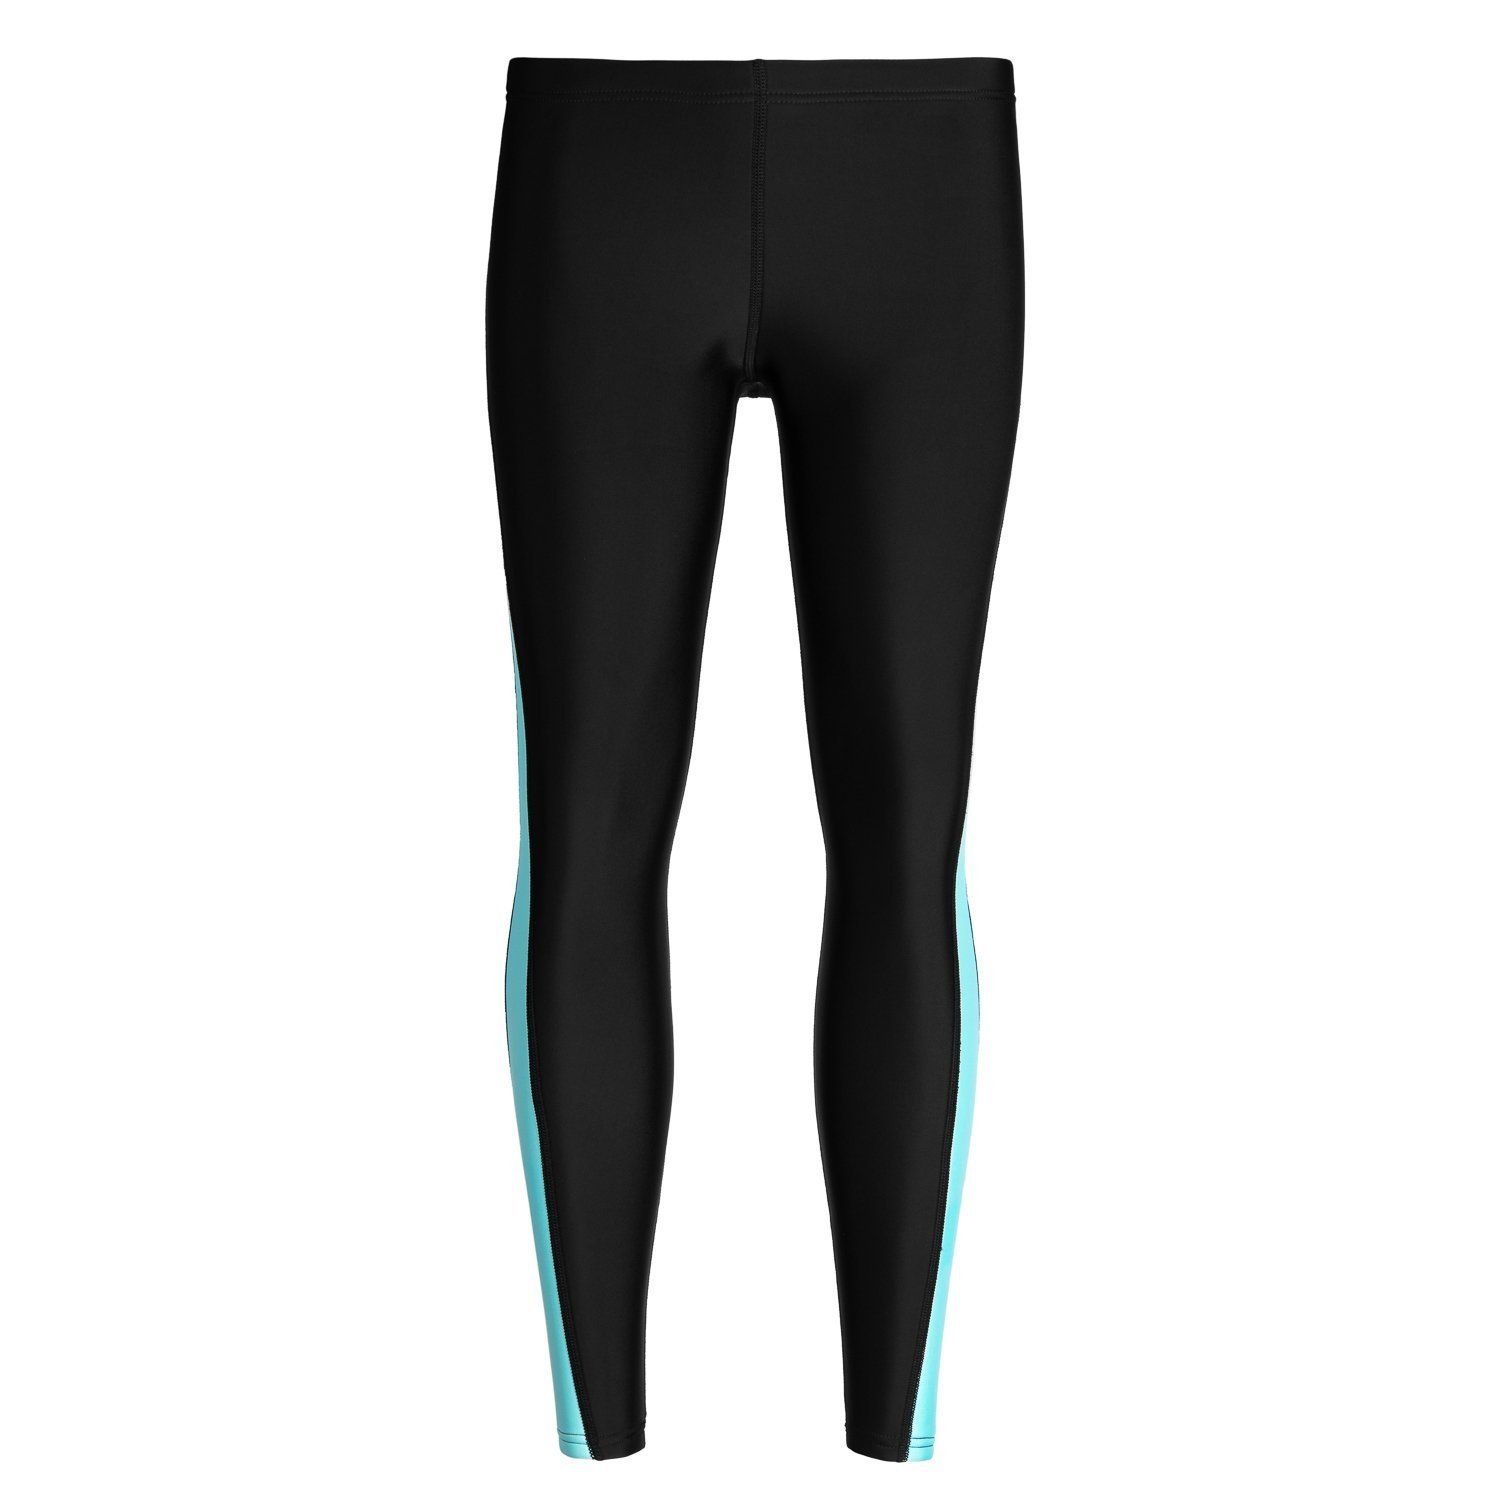 38f1796f92 Amazon.com  EYCE Dive   SAIL Women s 1.5mm Neoprene Wetsuit Pants Diving  Snorkeling Scuba Surf Canoe Pants  Sports   Outdoors